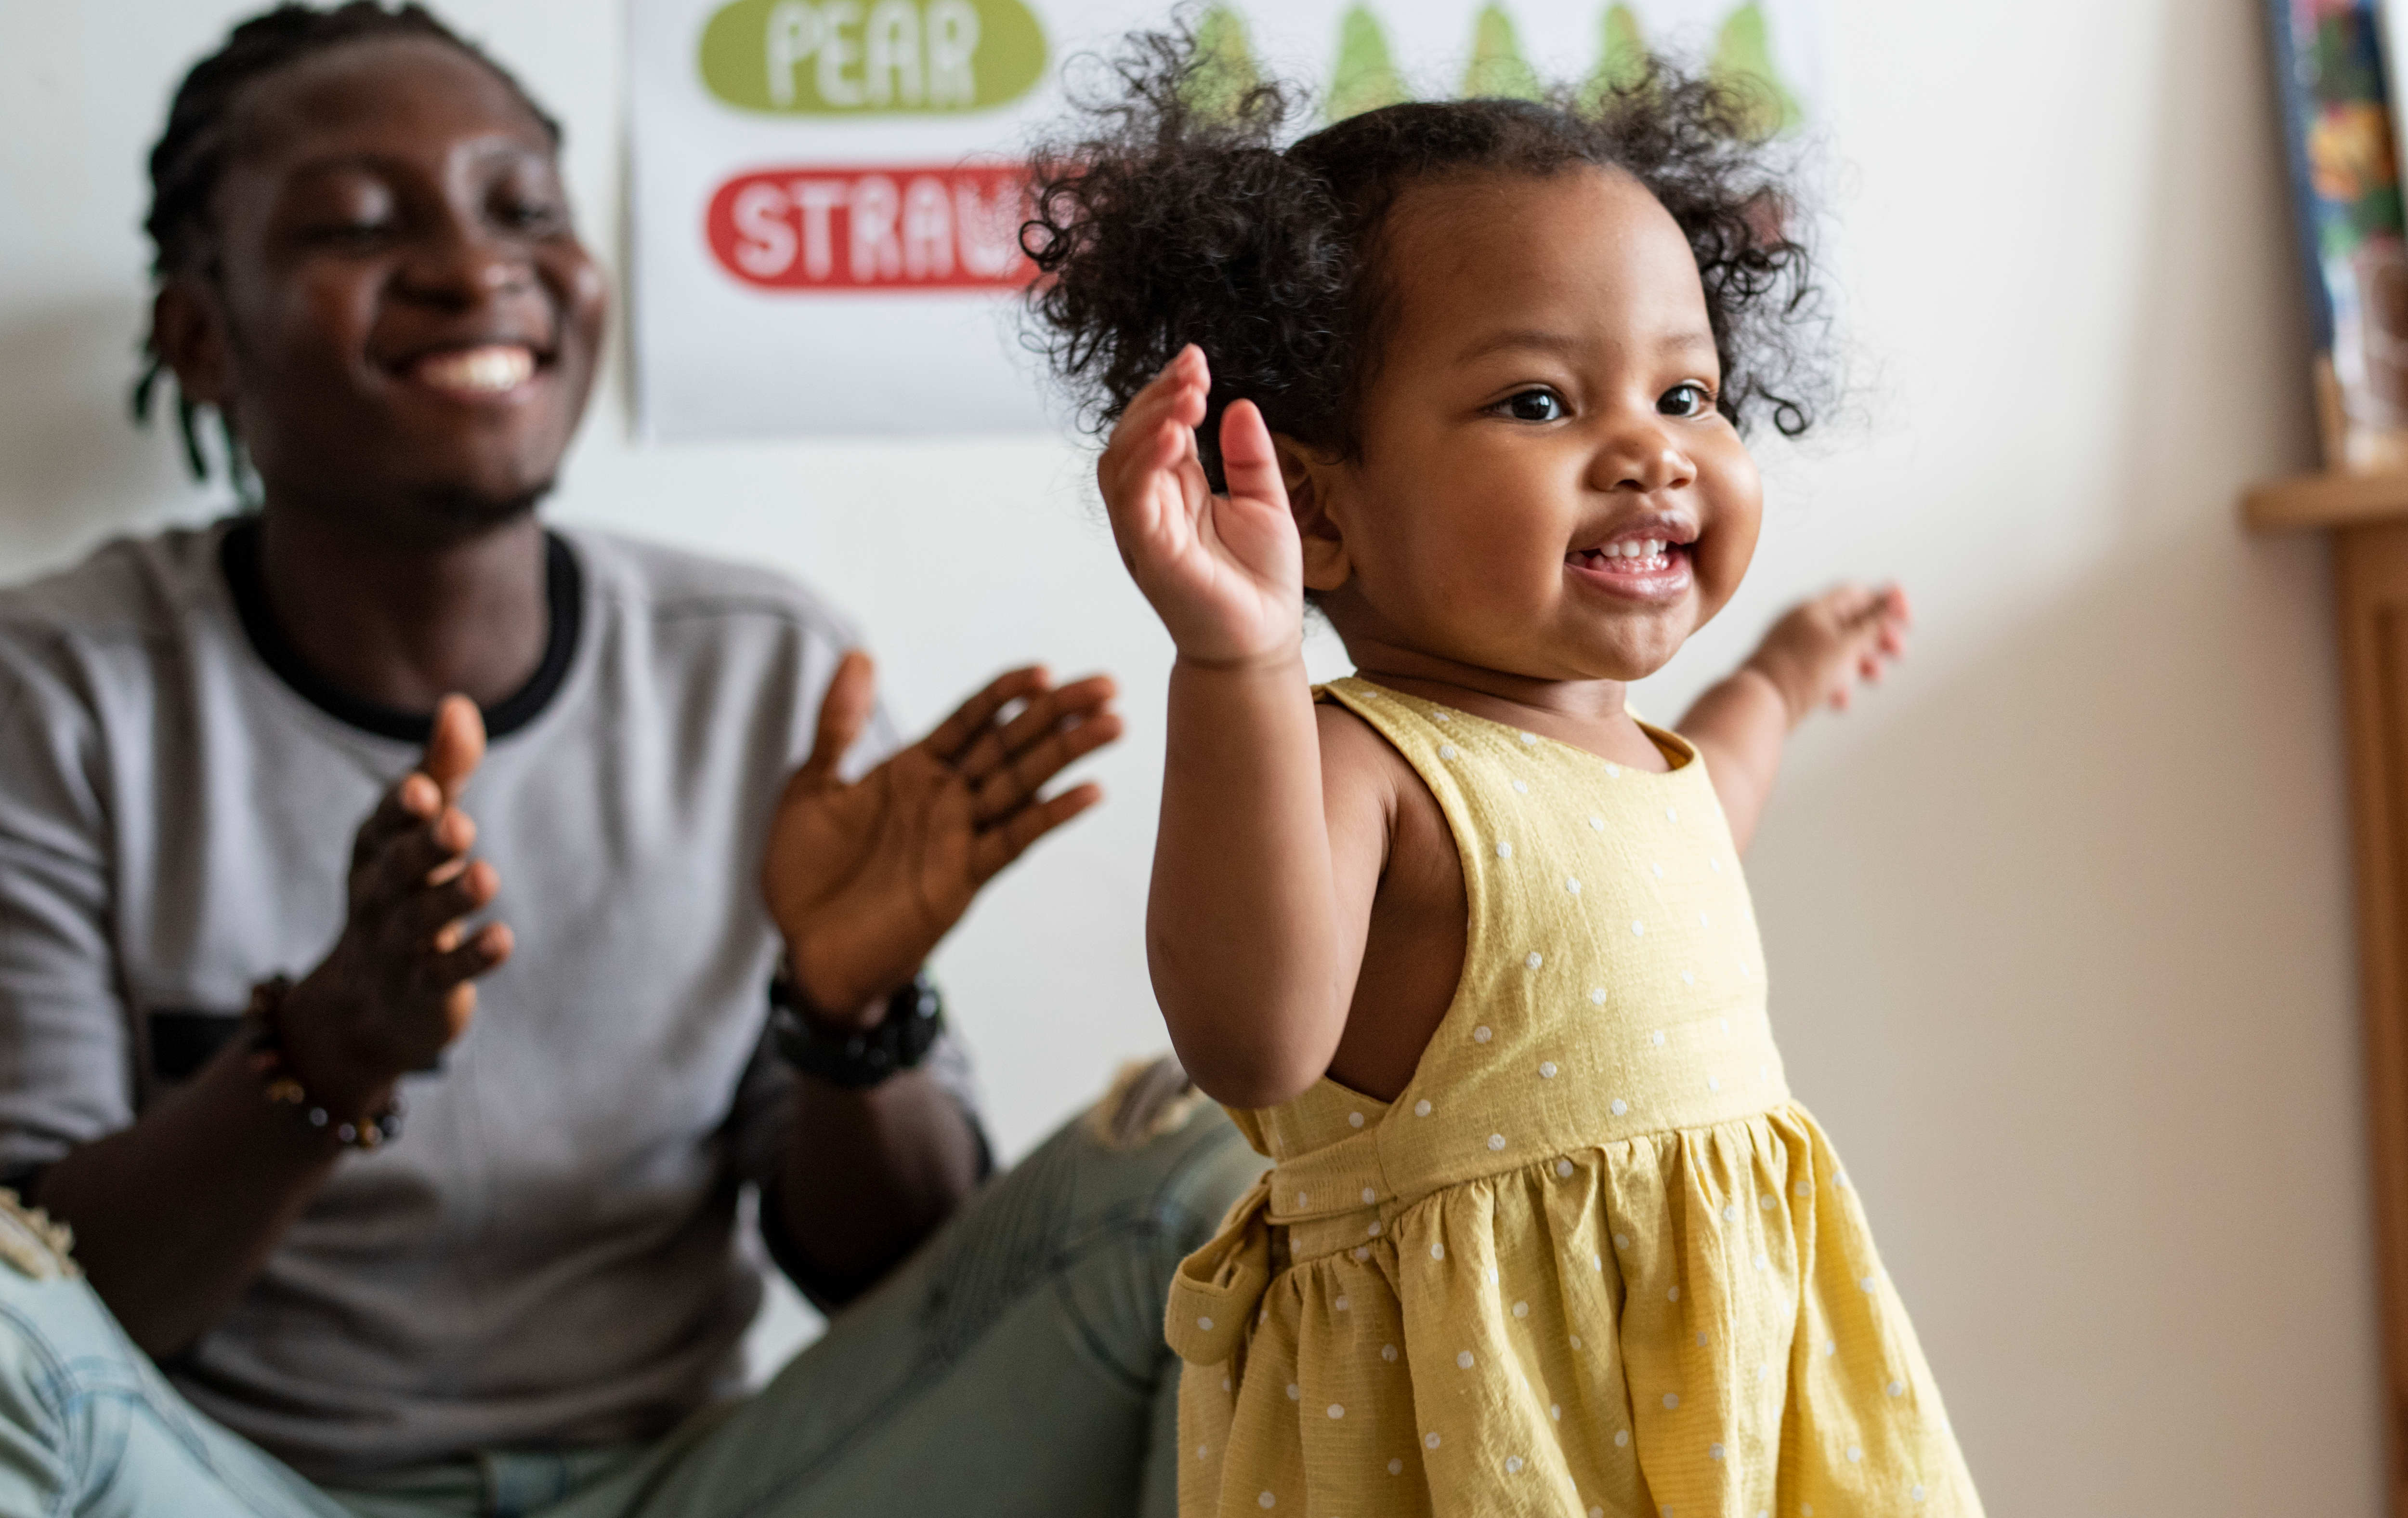 Little girl in yellow dress dances as father watches on clapping